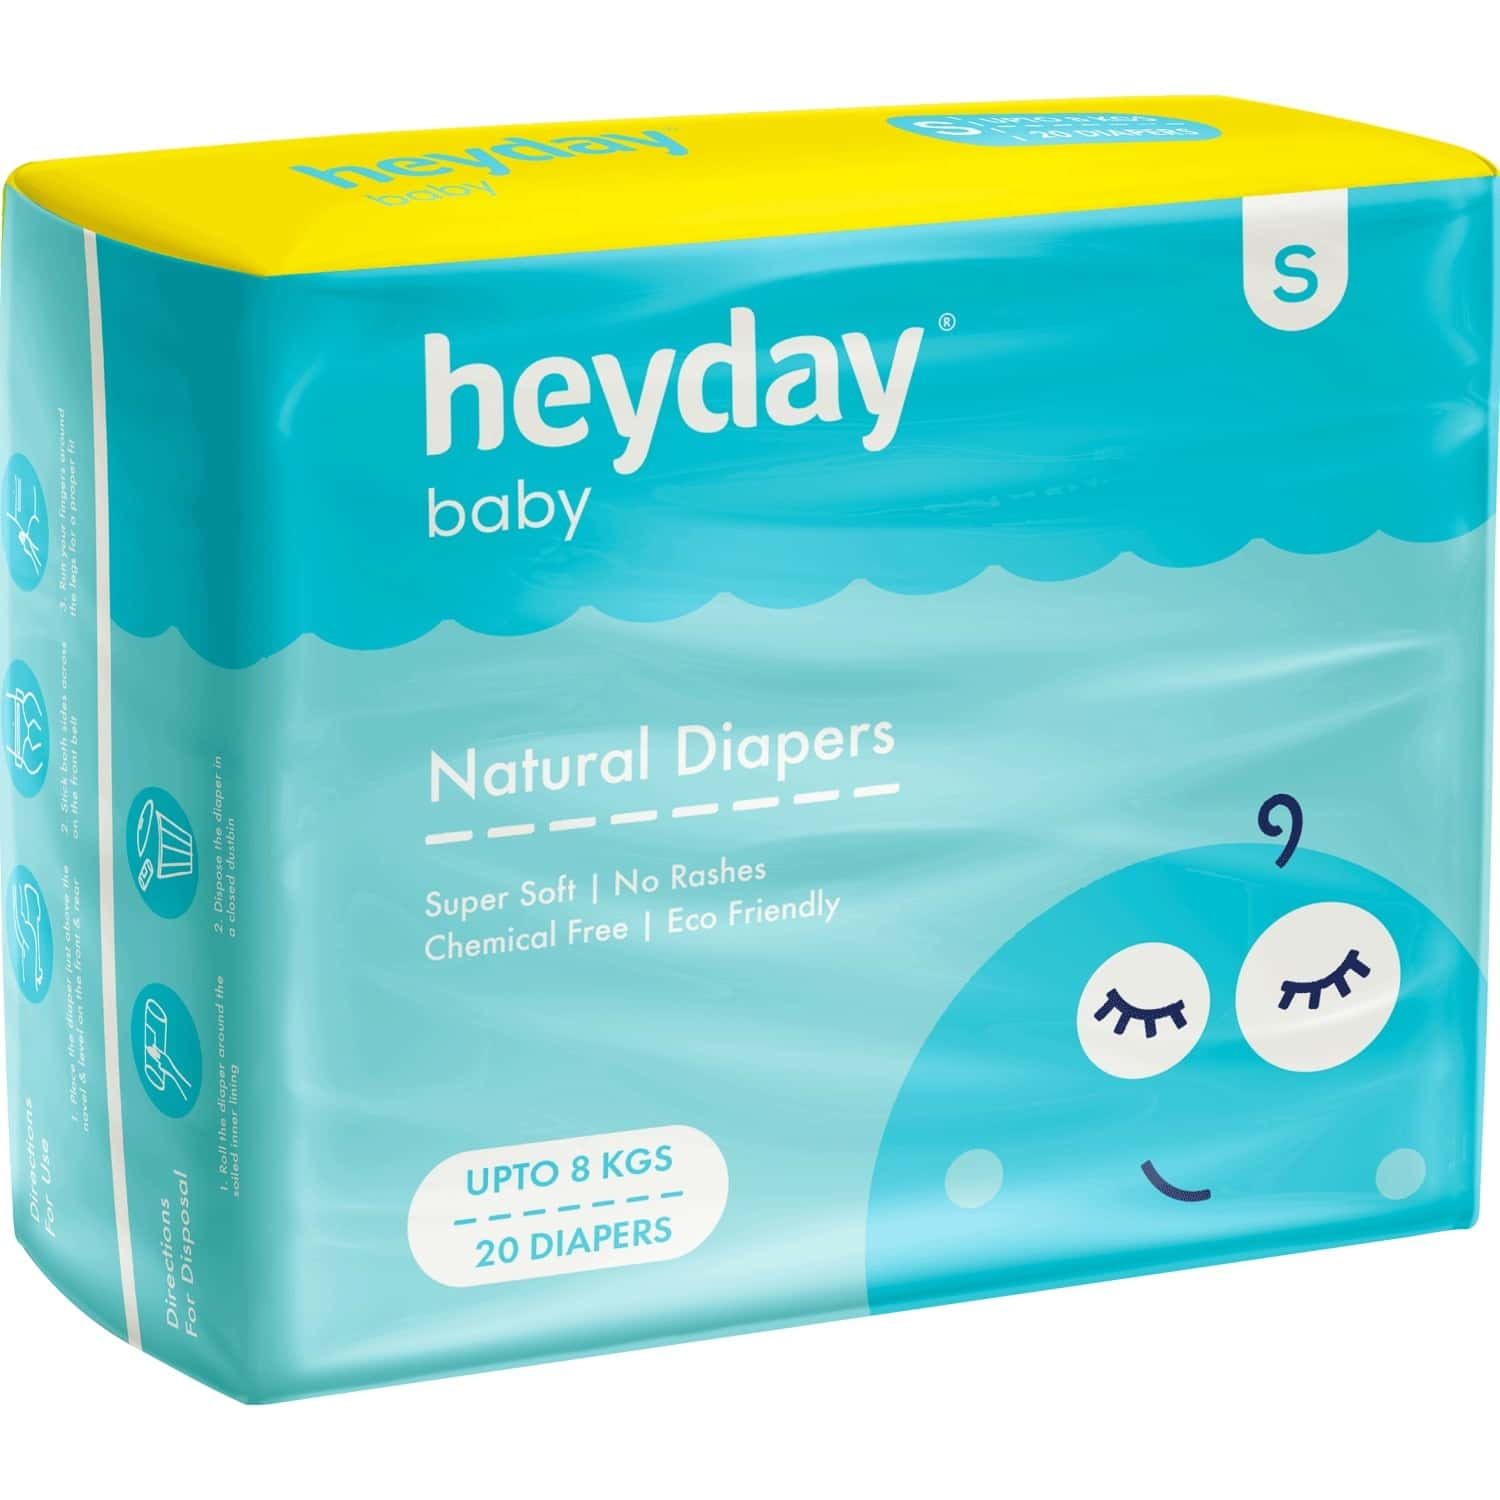 Heyday Natural & Organic Small Baby Diapers (20 Diapers | Upto 8 Kg)